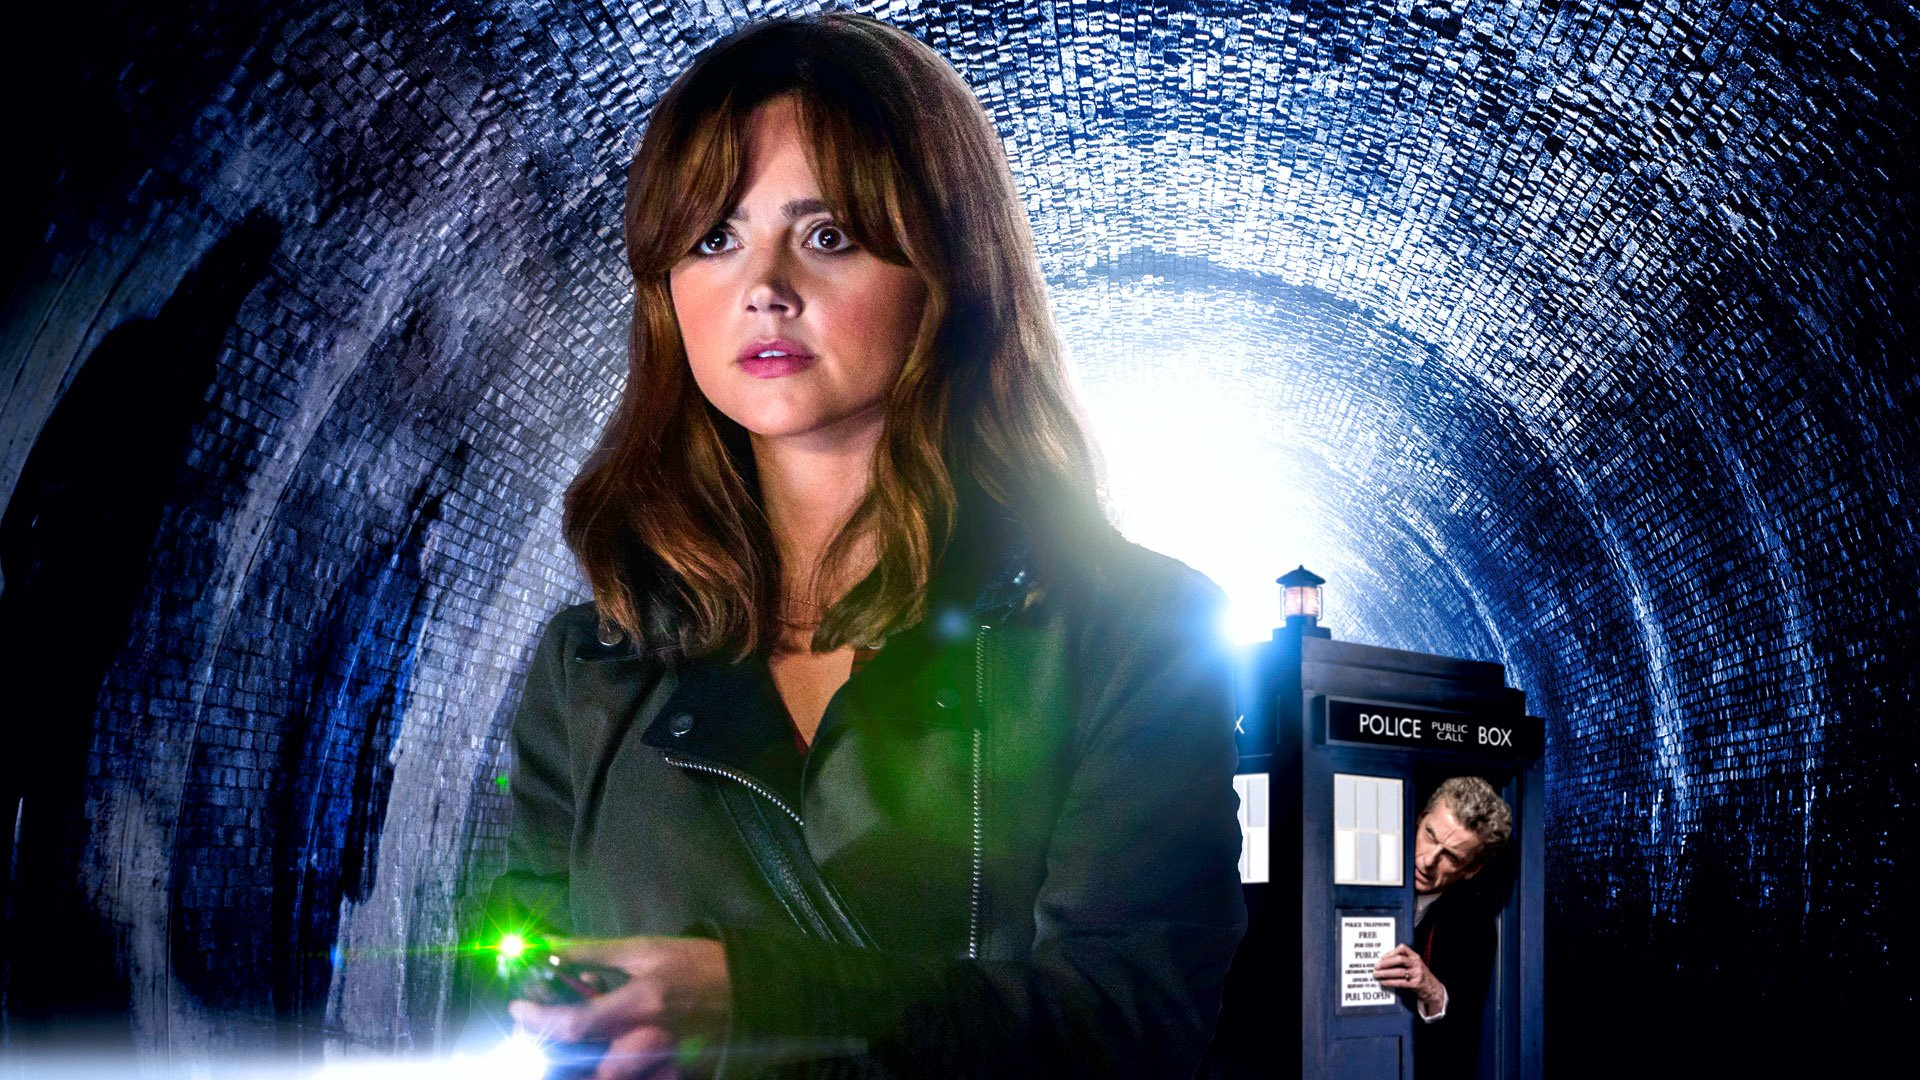 Doctor Who Hd Wallpaper Background Image 1920x1080 Id 689982